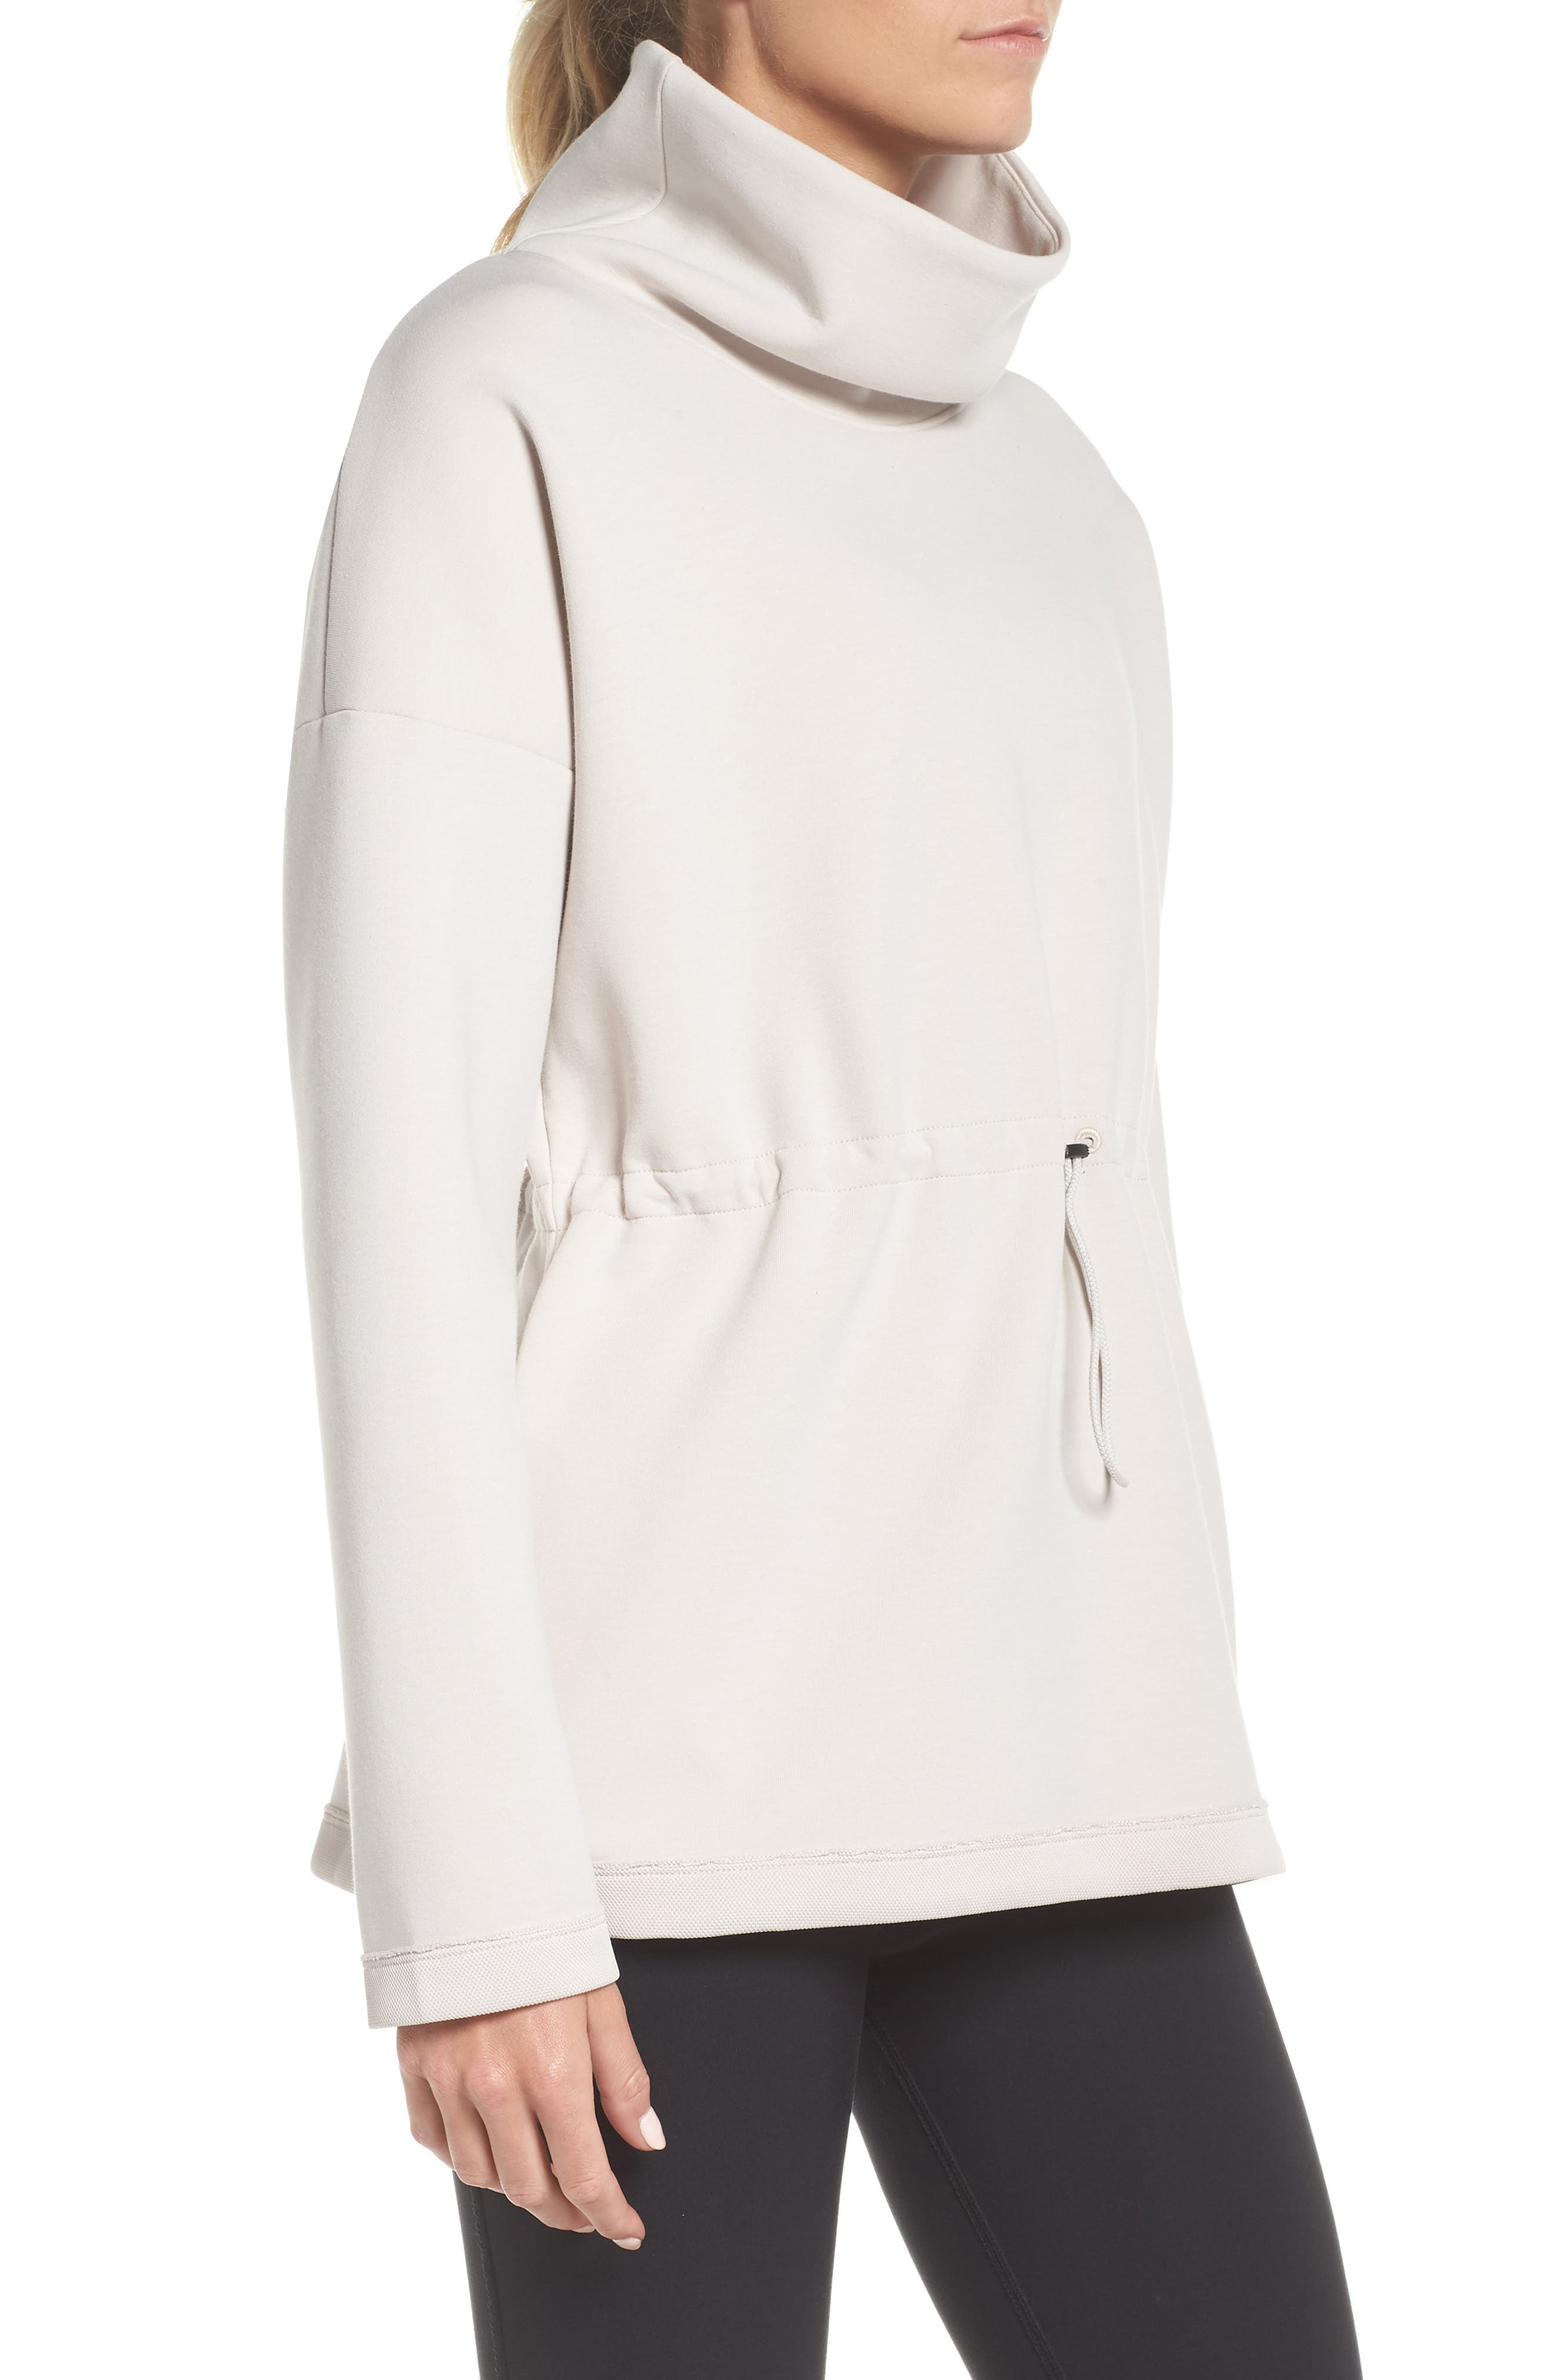 NIKE,                             Dry Therma Flex Pullover,                             Alternate thumbnail 4, color,                             250